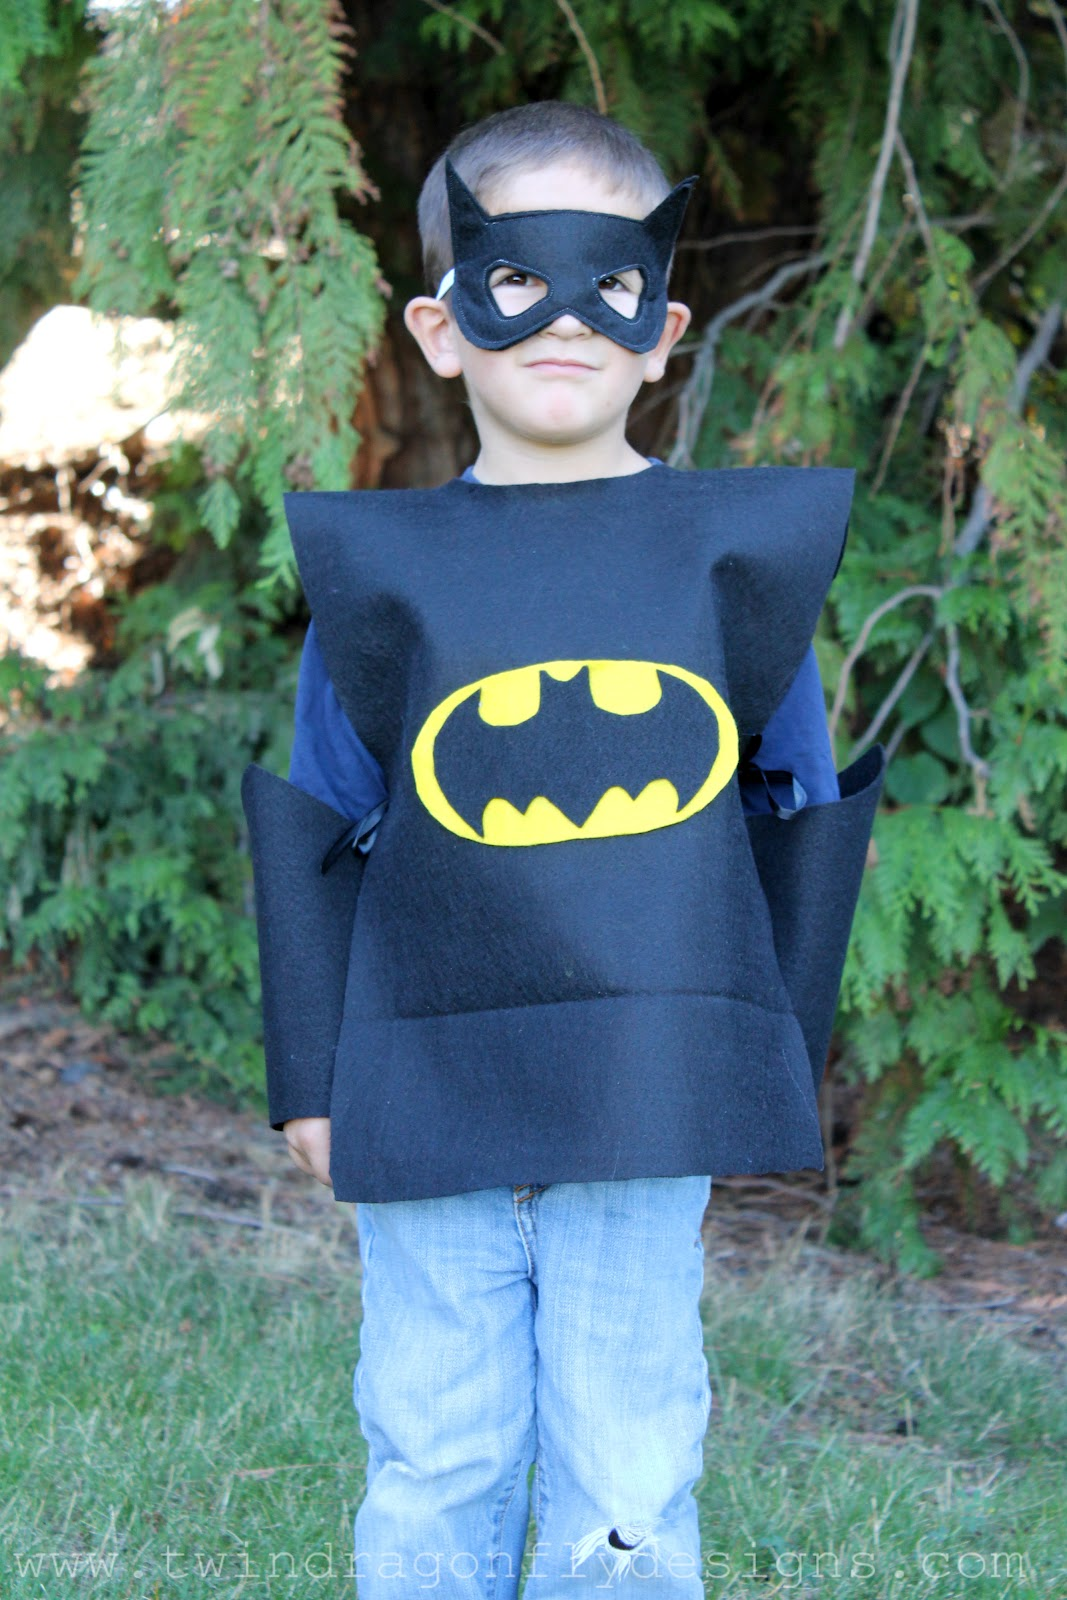 & No Sew SUPER HERO COSTUMES Tutorial » Dragonfly Designs